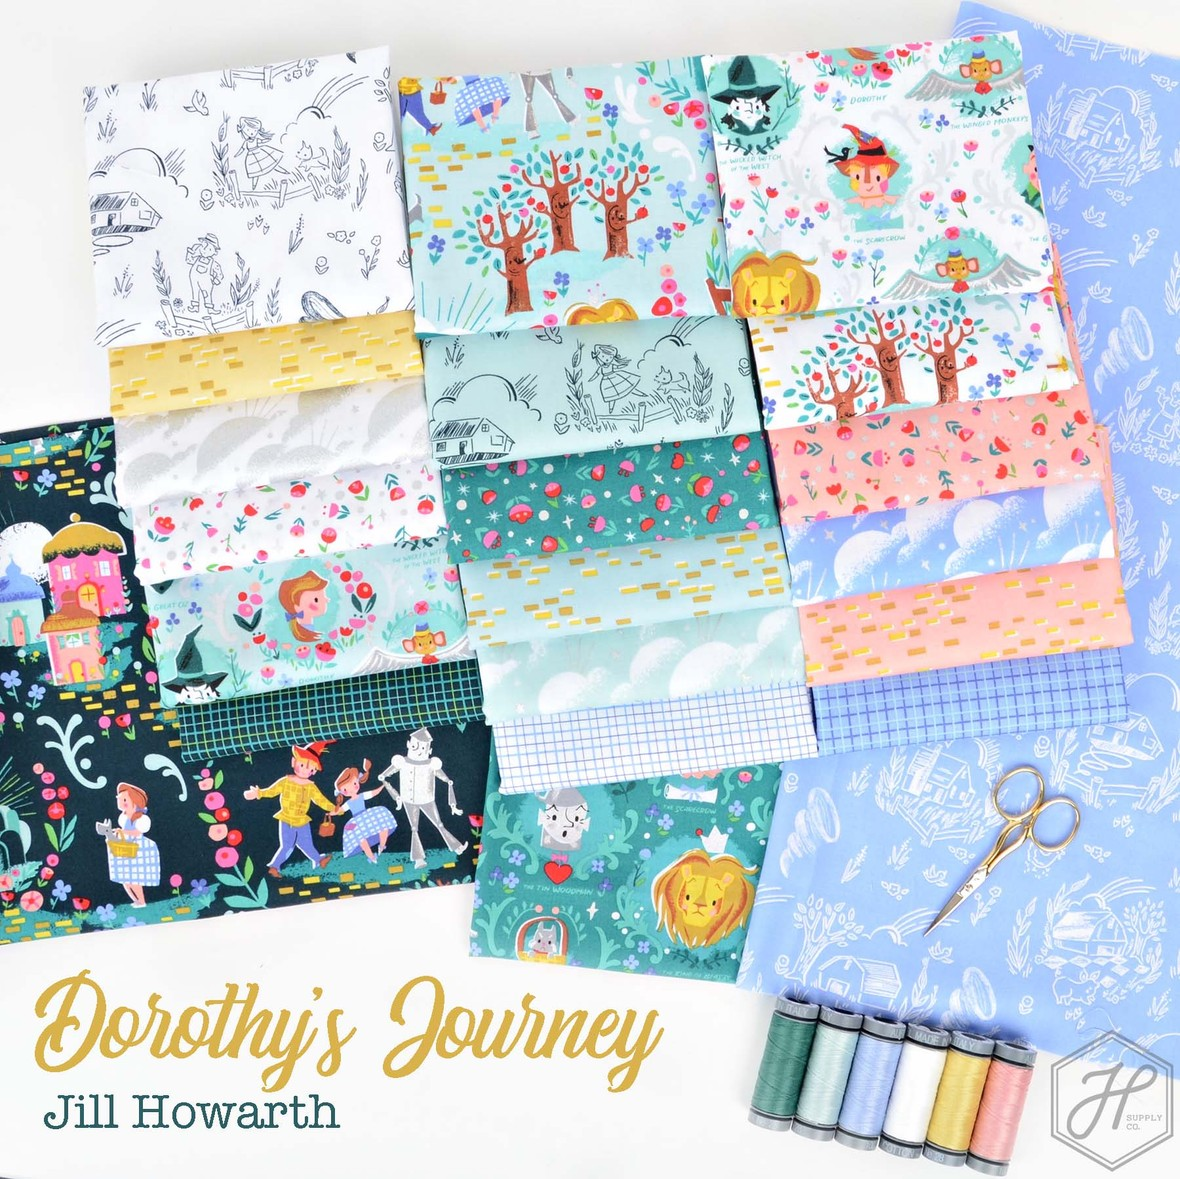 Dorothys Journey Fabric Poster Jill Howarth at Hawthorne Supply Co